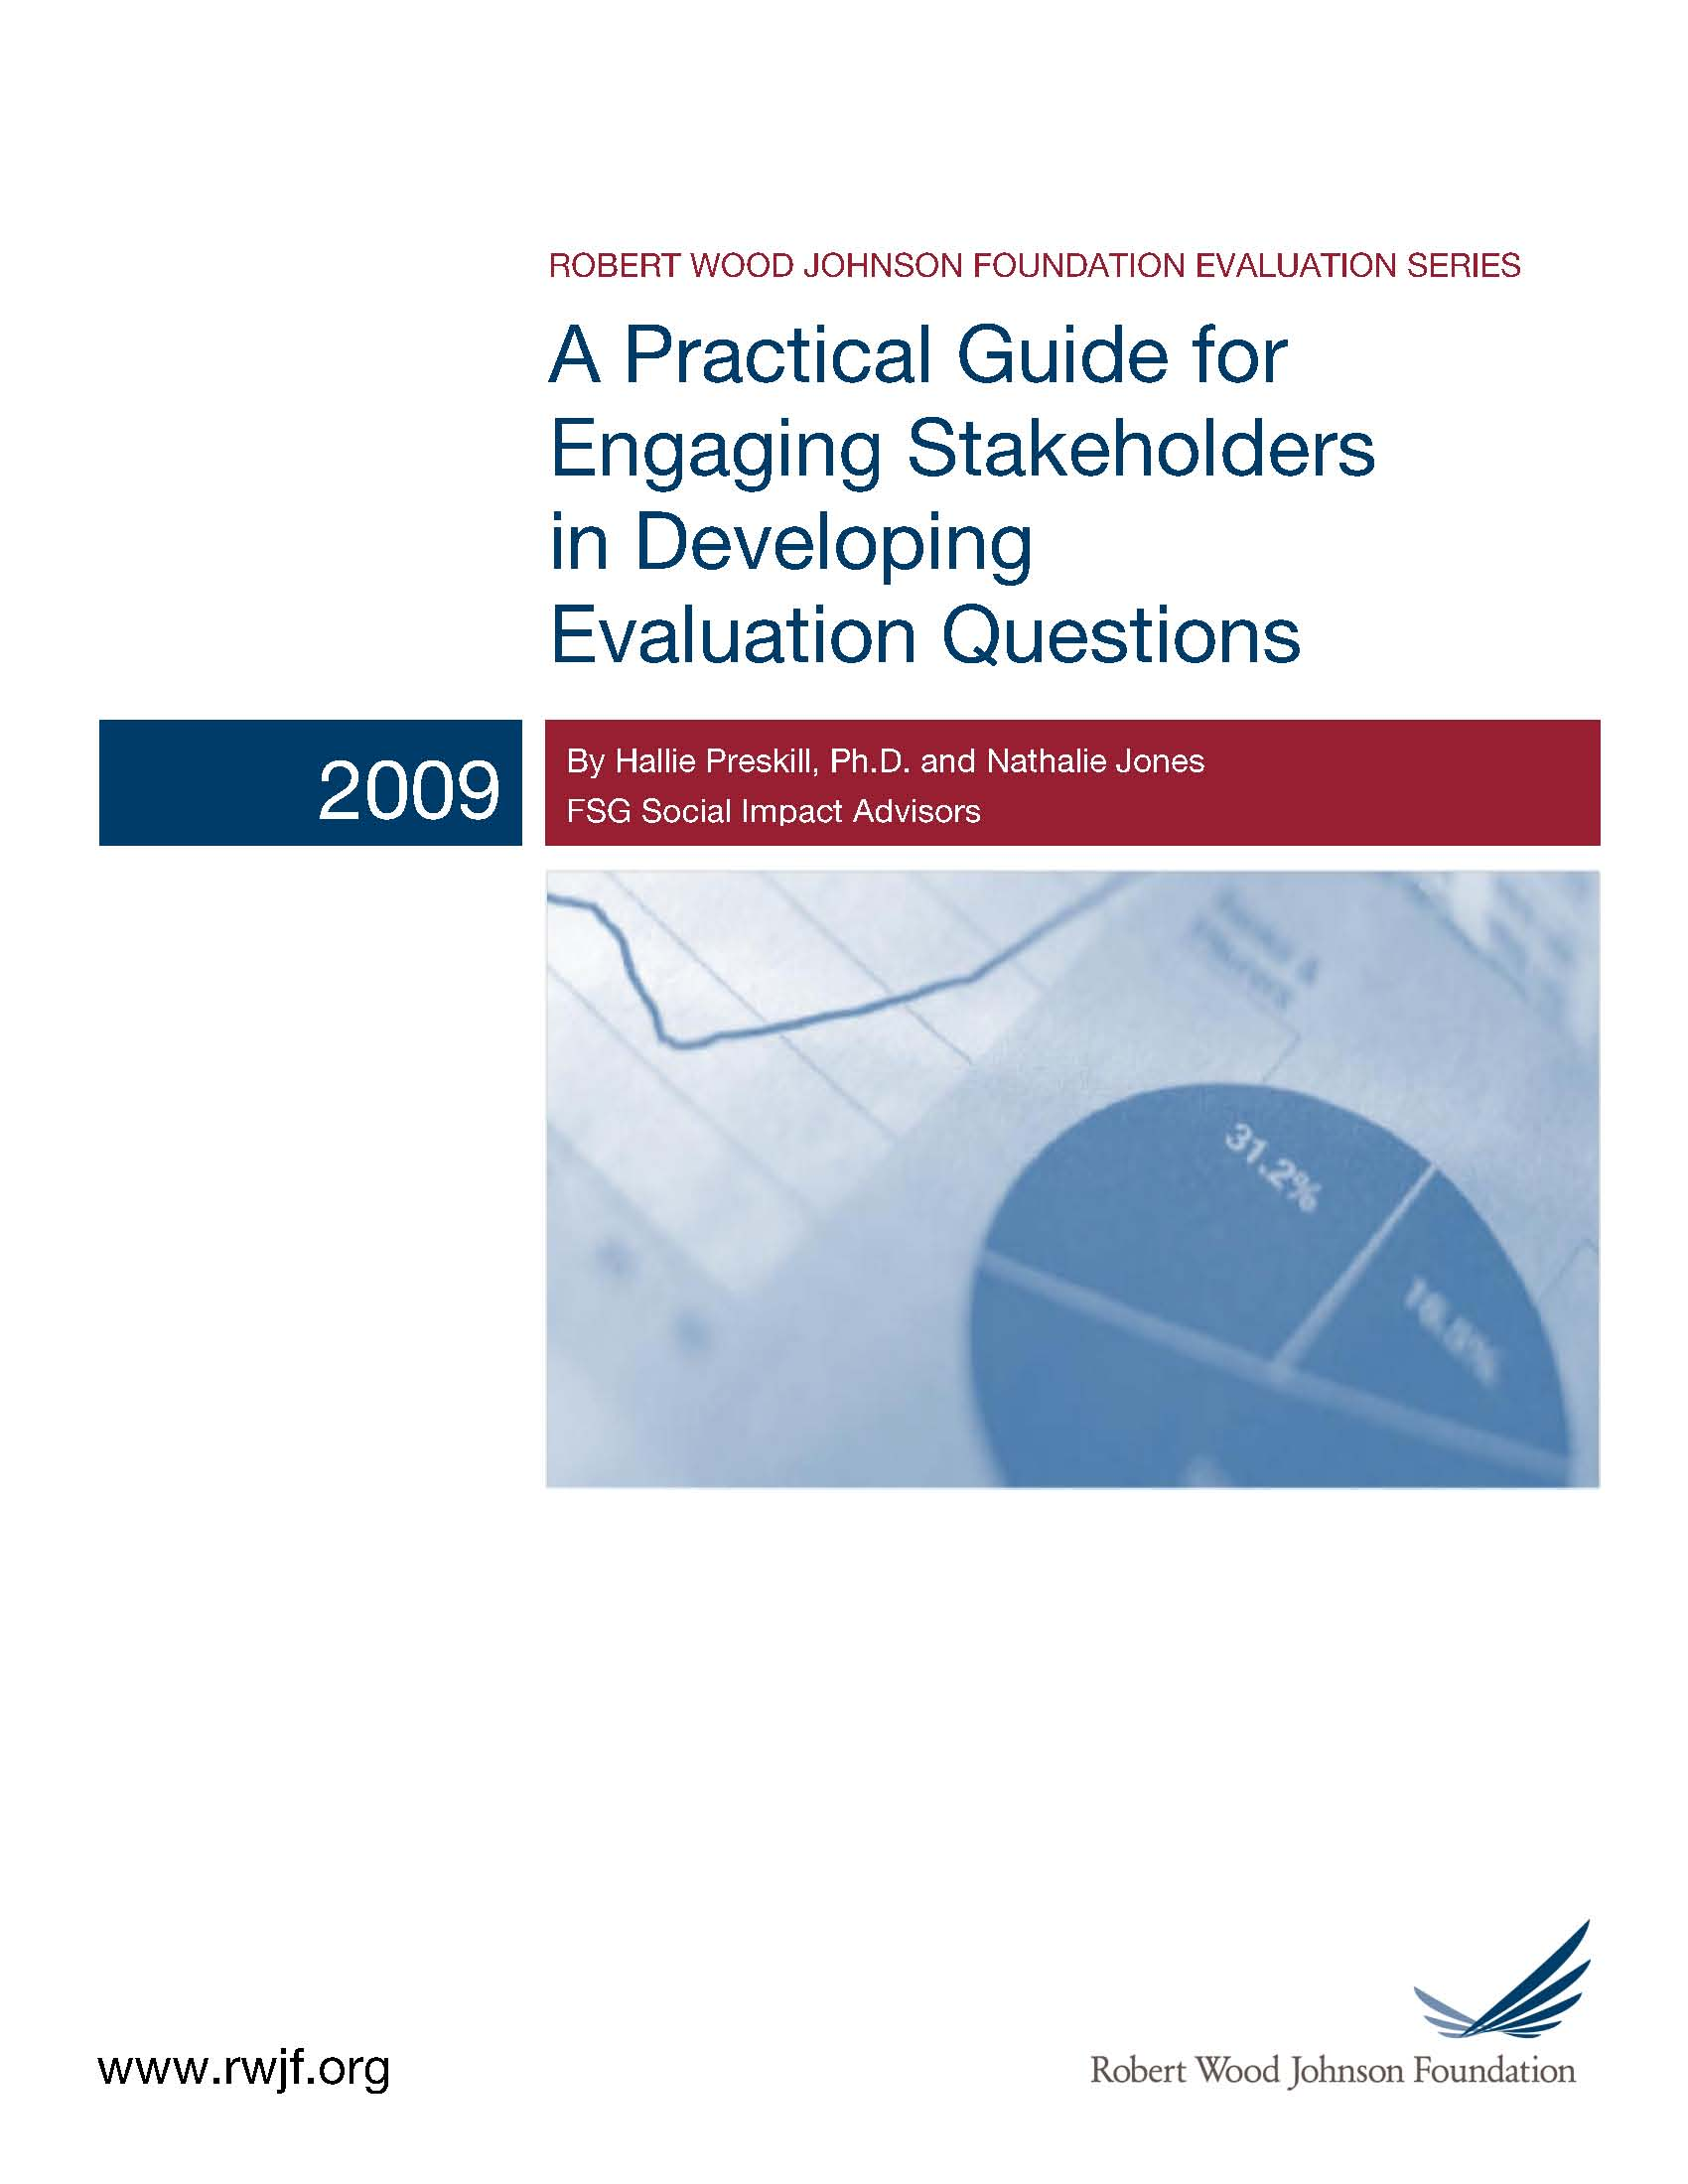 RWFJ A Practical Guide for Engaging Stakeholders in Developing Evaluation Questions